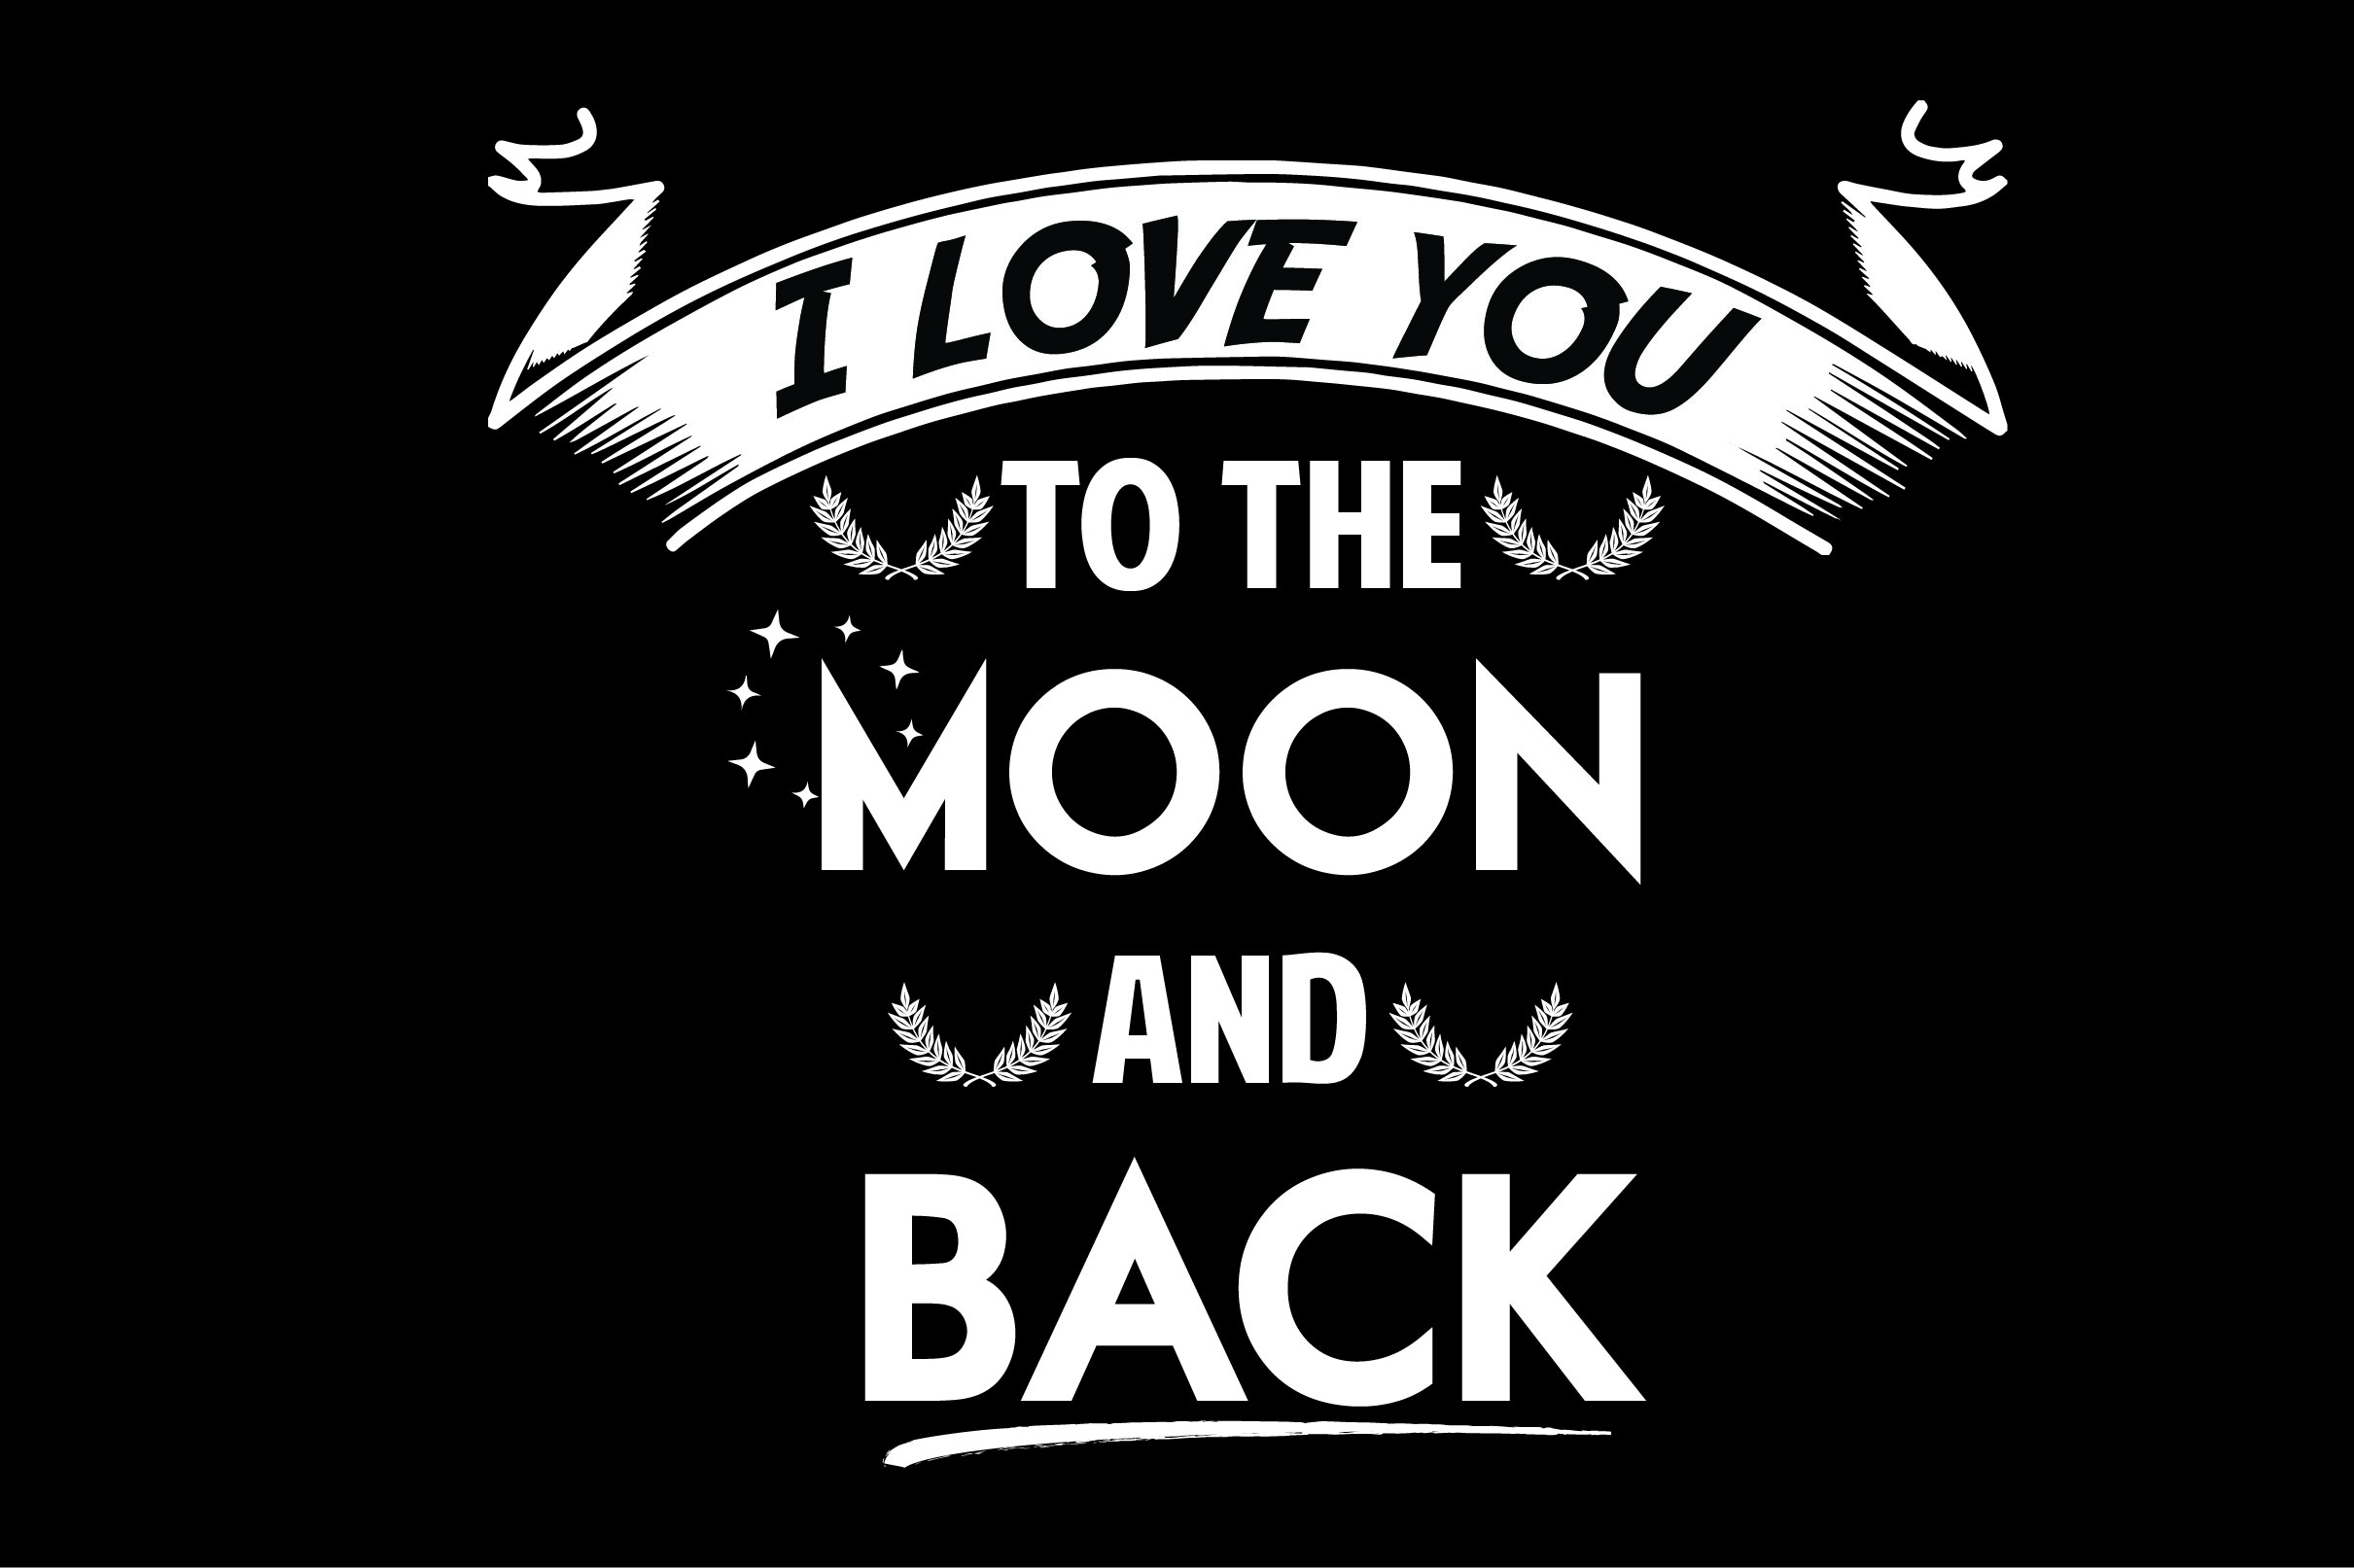 Download Free I Love You To The Moon And Back Graphic By Shirtgraphic for Cricut Explore, Silhouette and other cutting machines.